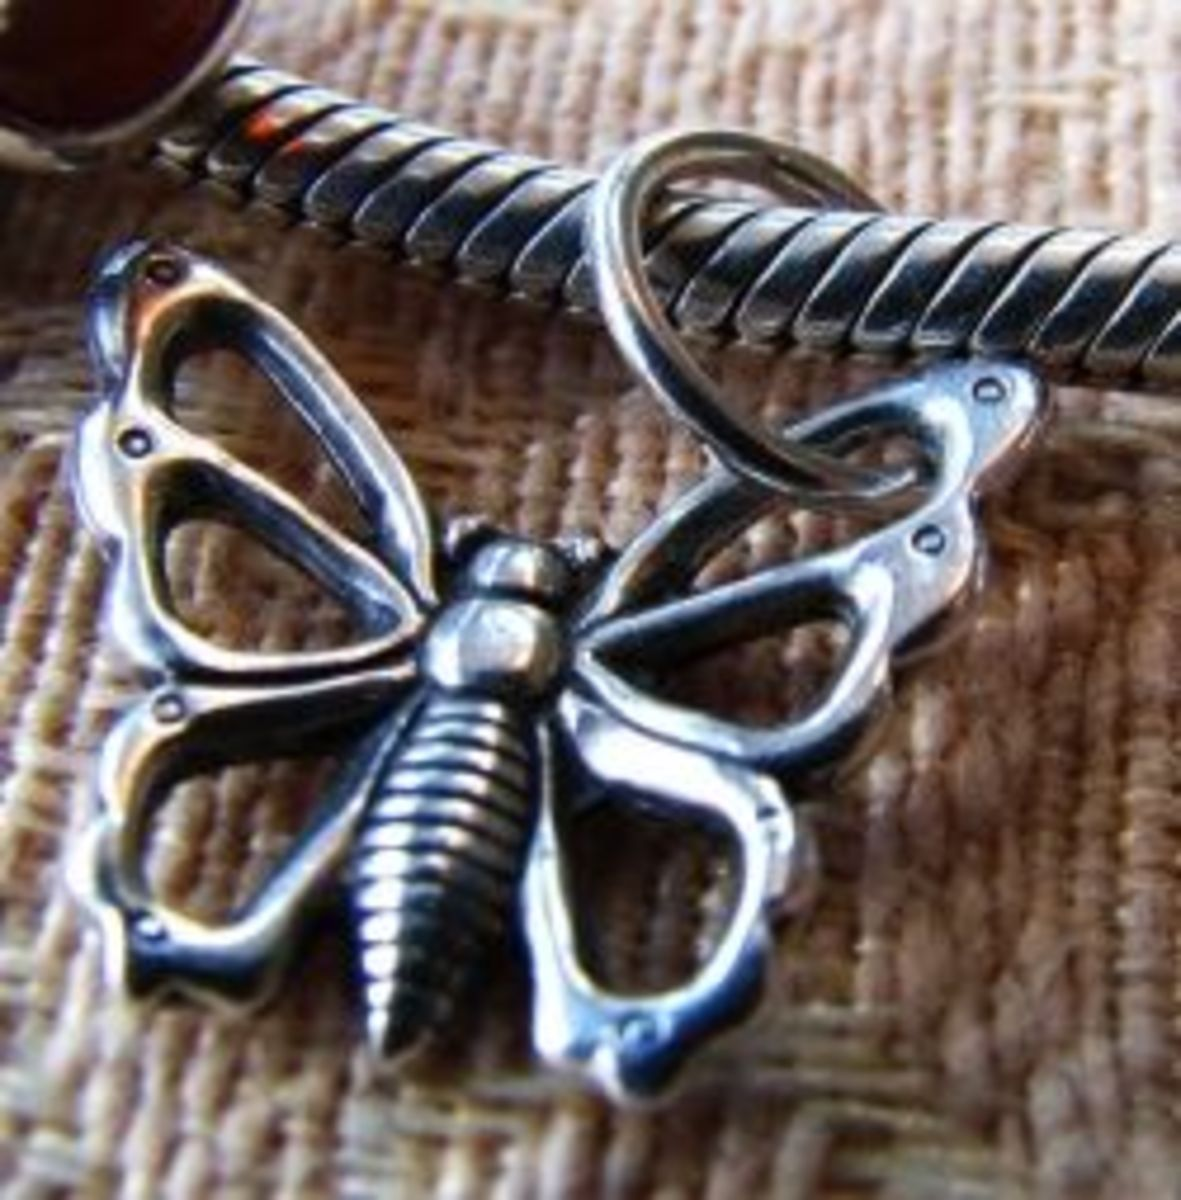 My Butterfly Charm adapted to my Pandora bracelet. Photo by Diane Cass